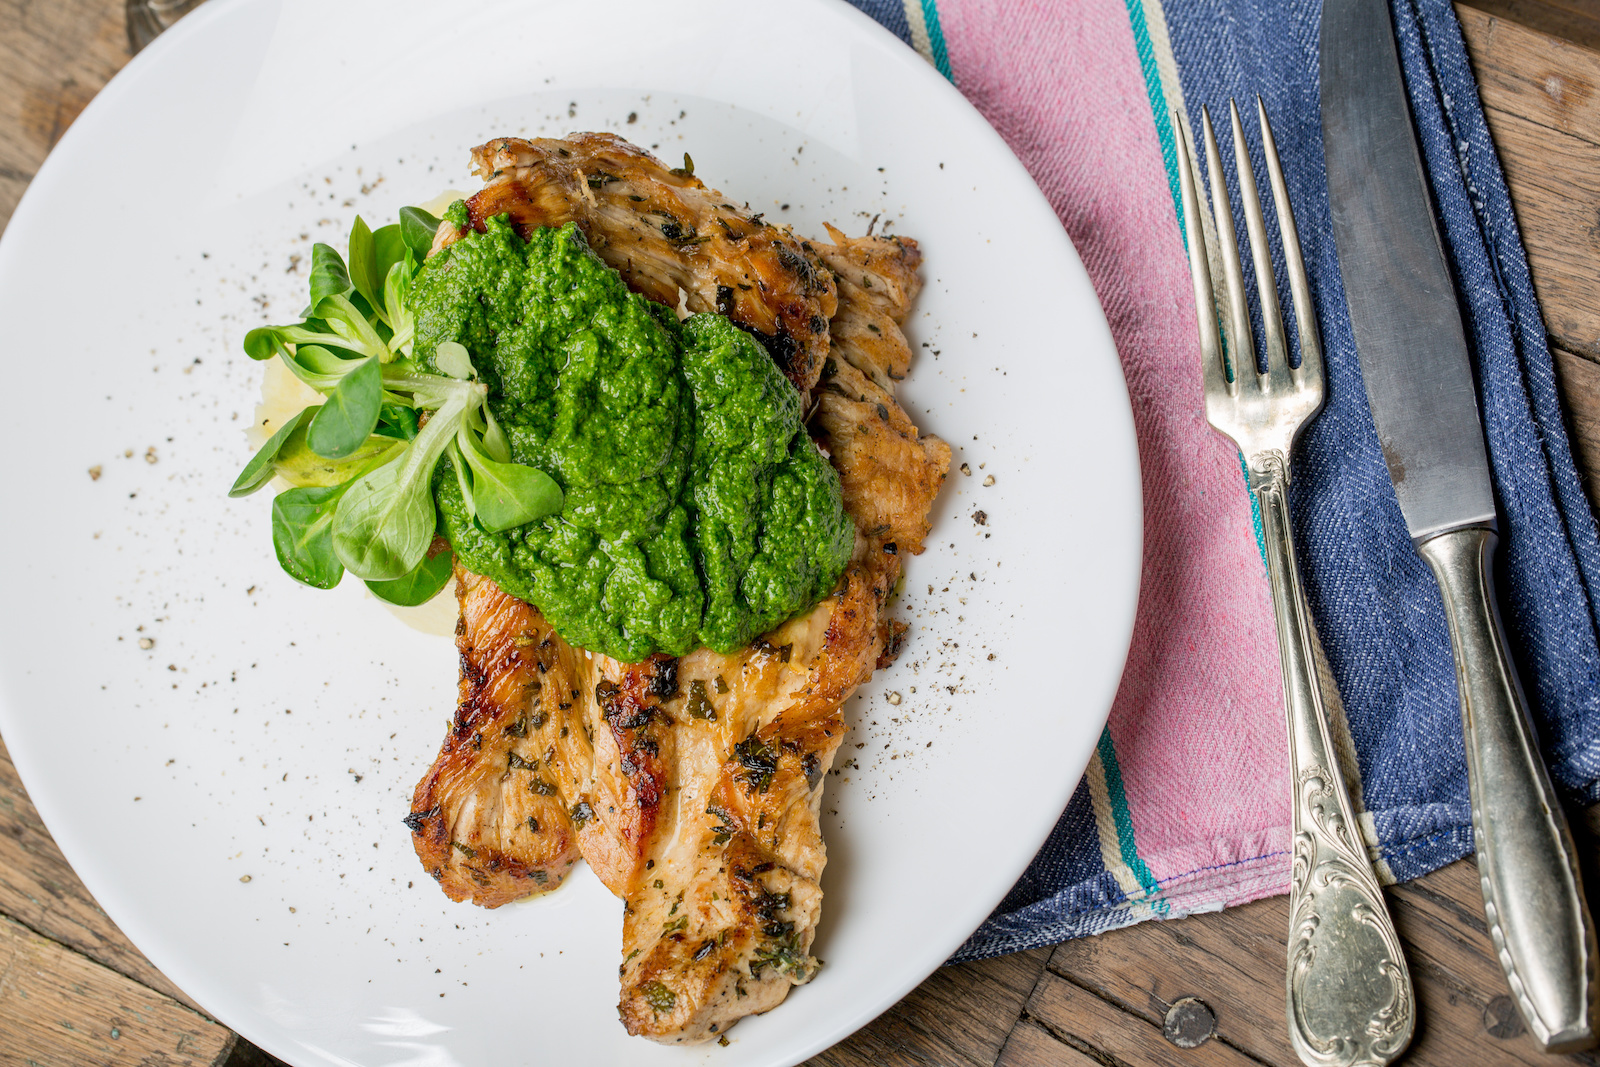 Keto Lunch: Pesto Chicken gegrillt Rezept